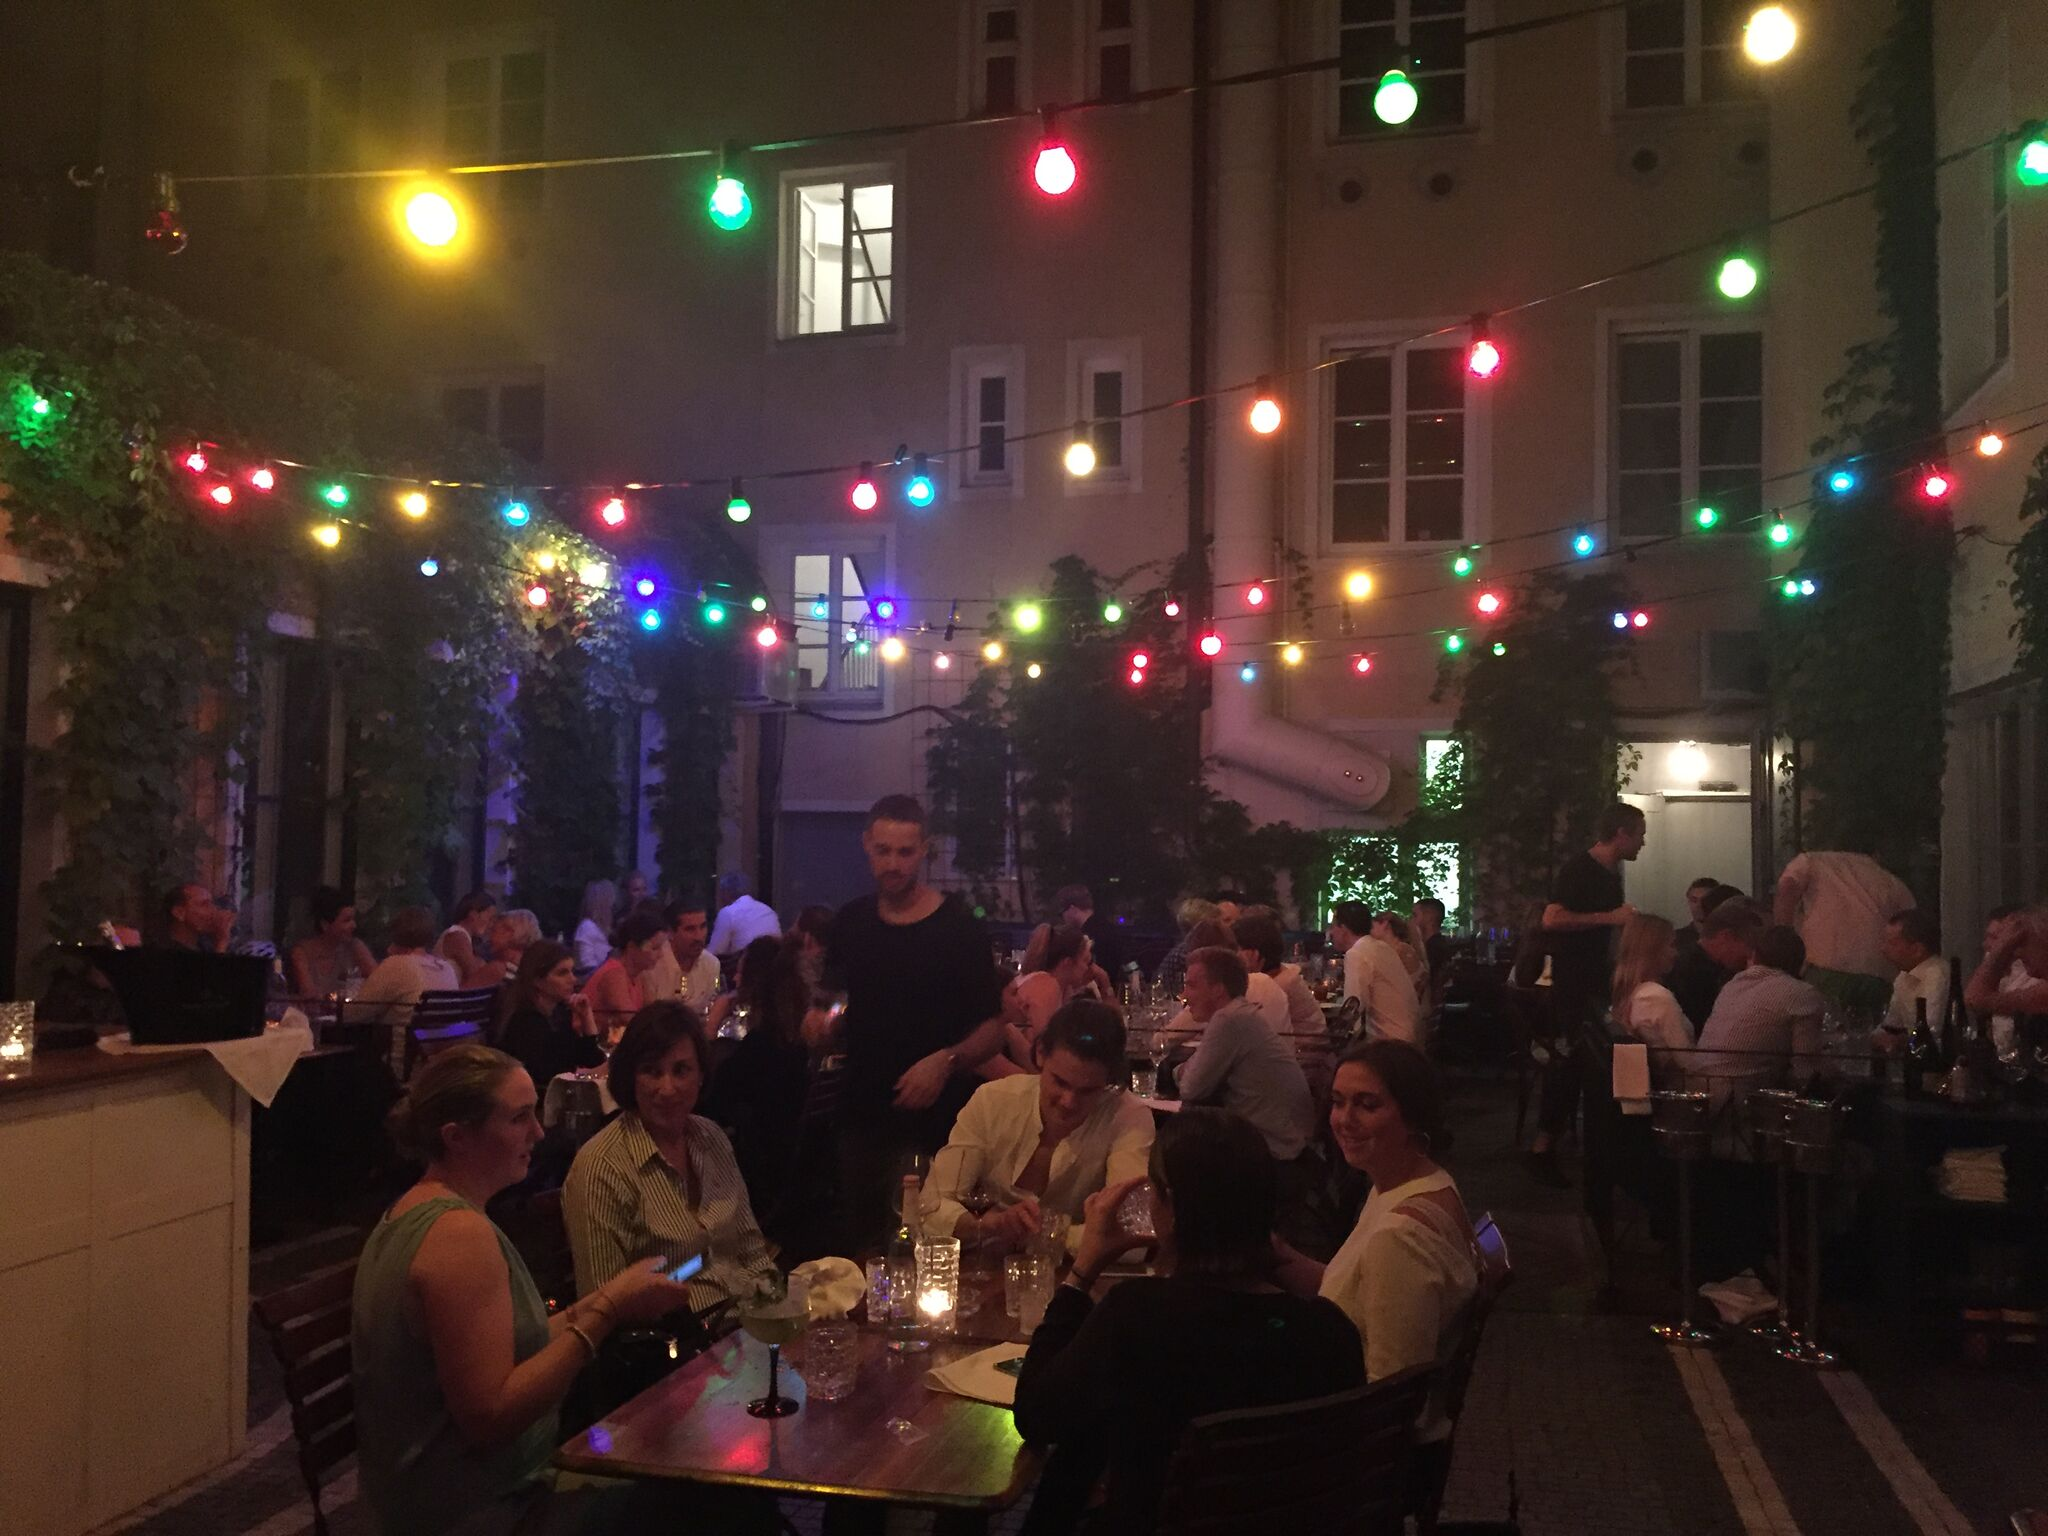 IMG 2273 1024x768 - Best Outdoor Bars and Rooftops for a Drink in Munich